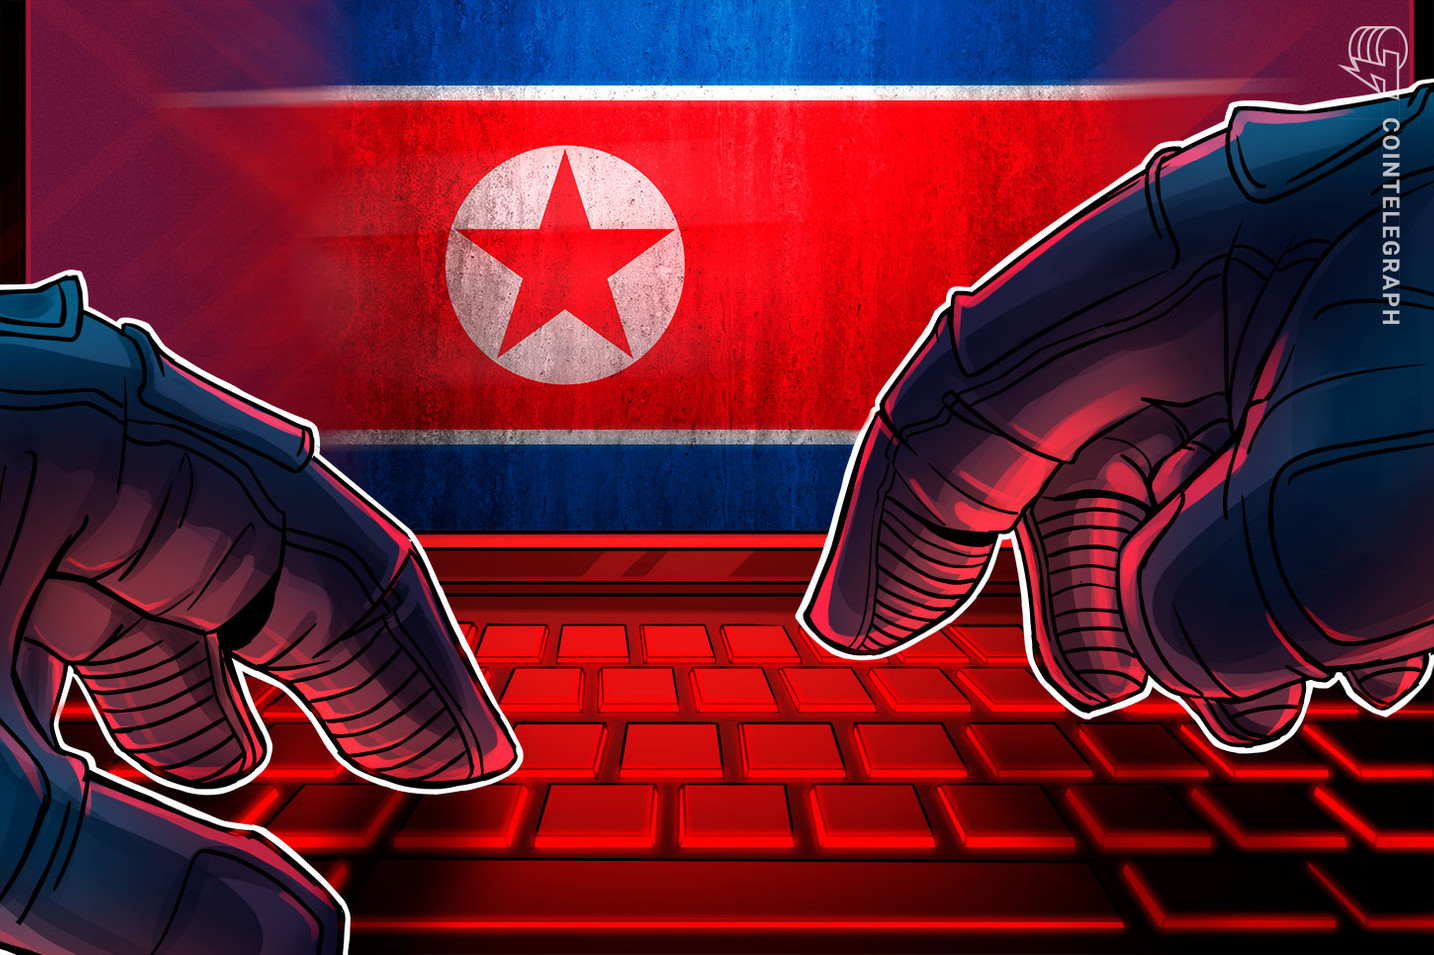 DOJ charges North Korean programmers over hacking scheme to steal $1.3B class=